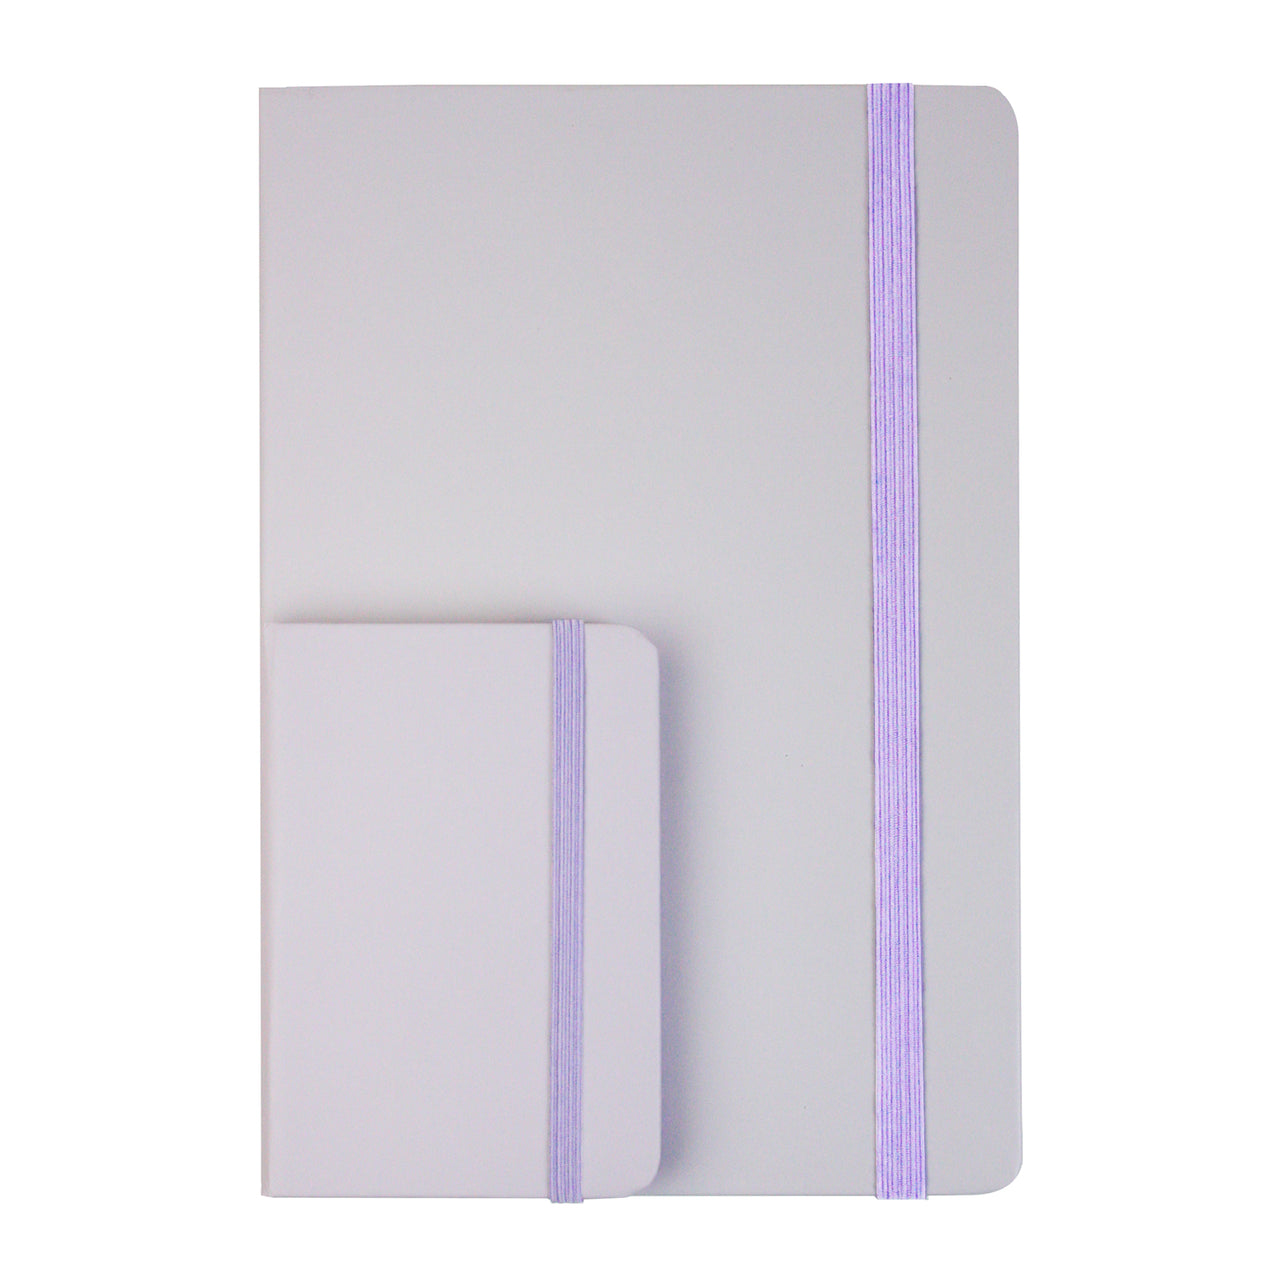 A5 & A7 Pastel Notebook - Purple - EMARTBUY